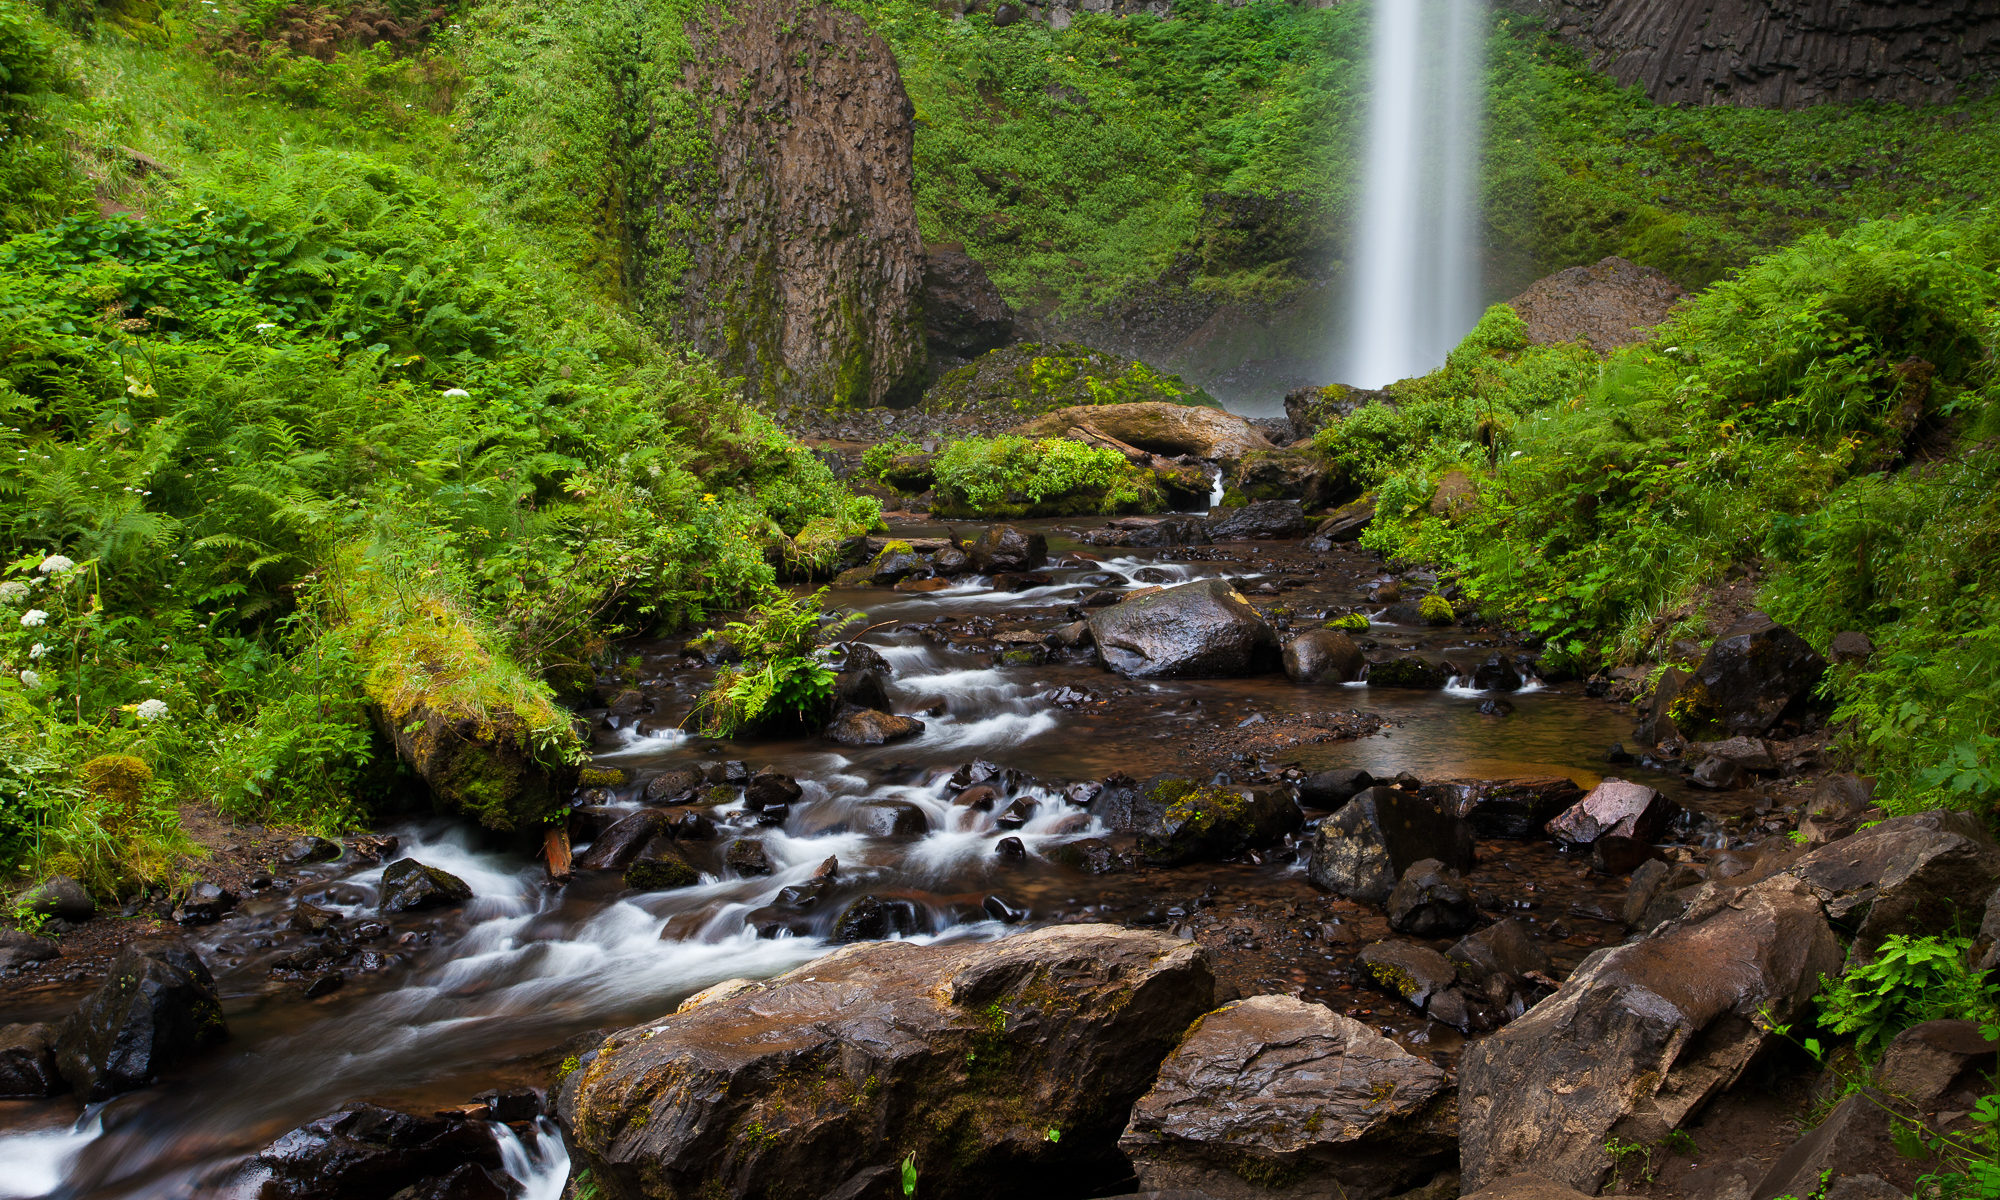 Latourell Falls drops straight down from an overhanging basalt cliff, Columbia River Gorge, Oregon